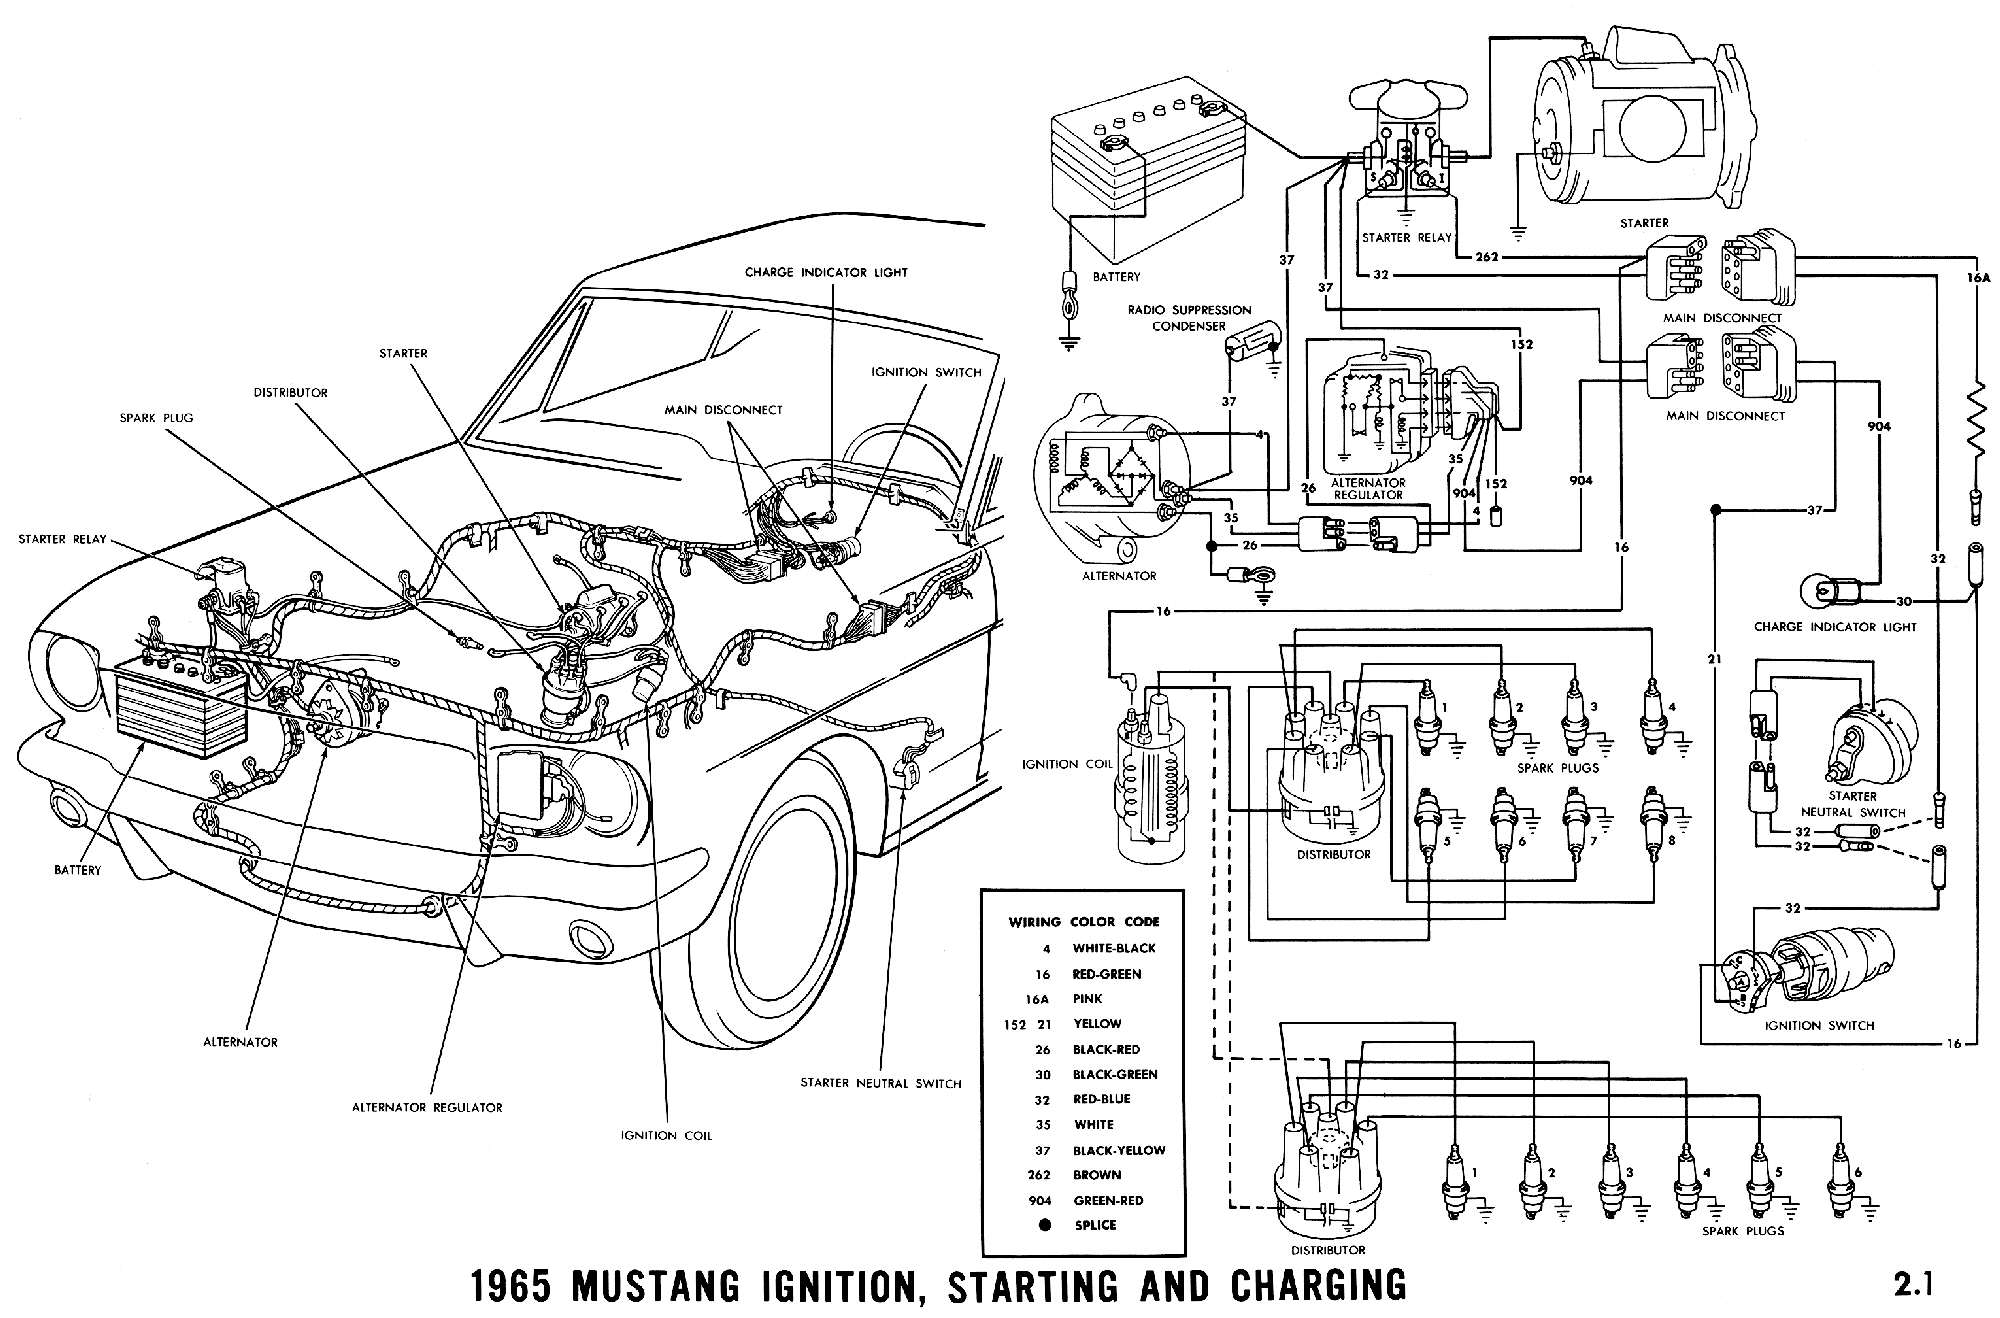 1965c 1965 mustang wiring diagrams average joe restoration ba falcon engine wiring diagram at creativeand.co